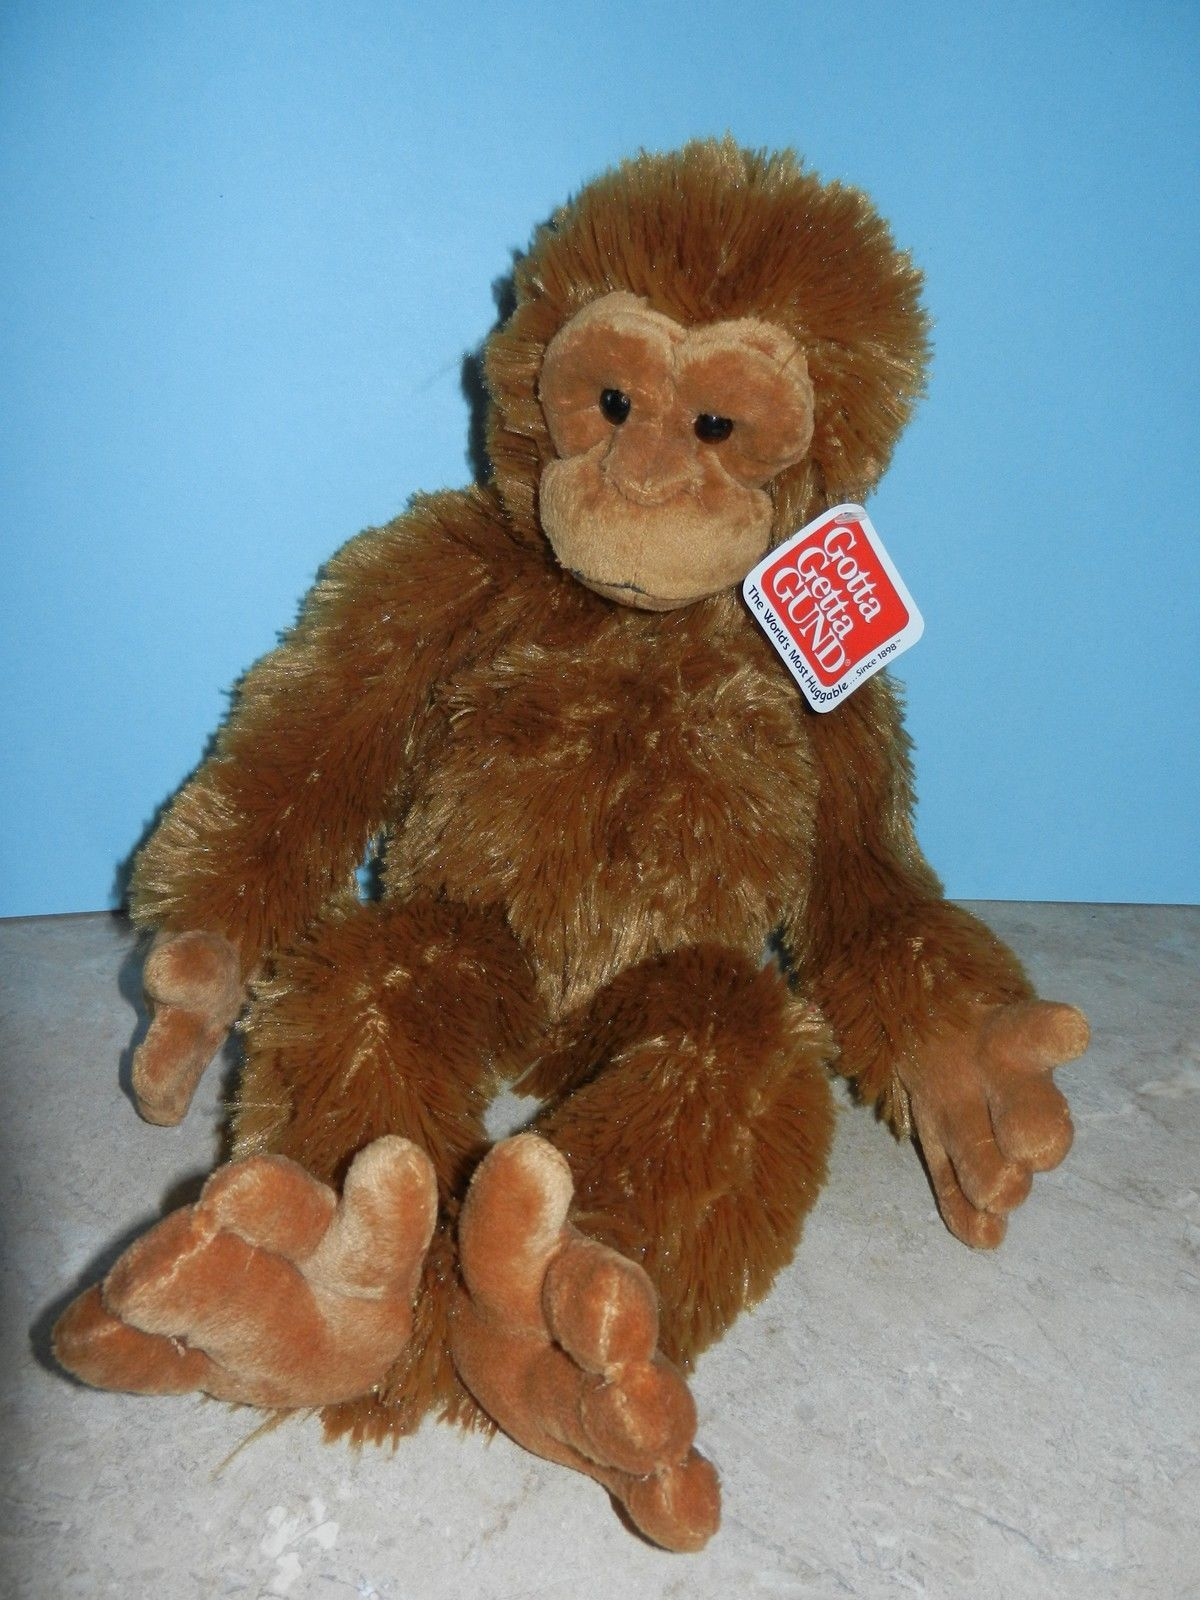 Primary image for Gund Stuffed Plush Ookie Monkey Soft Brown Fluffy with Tags